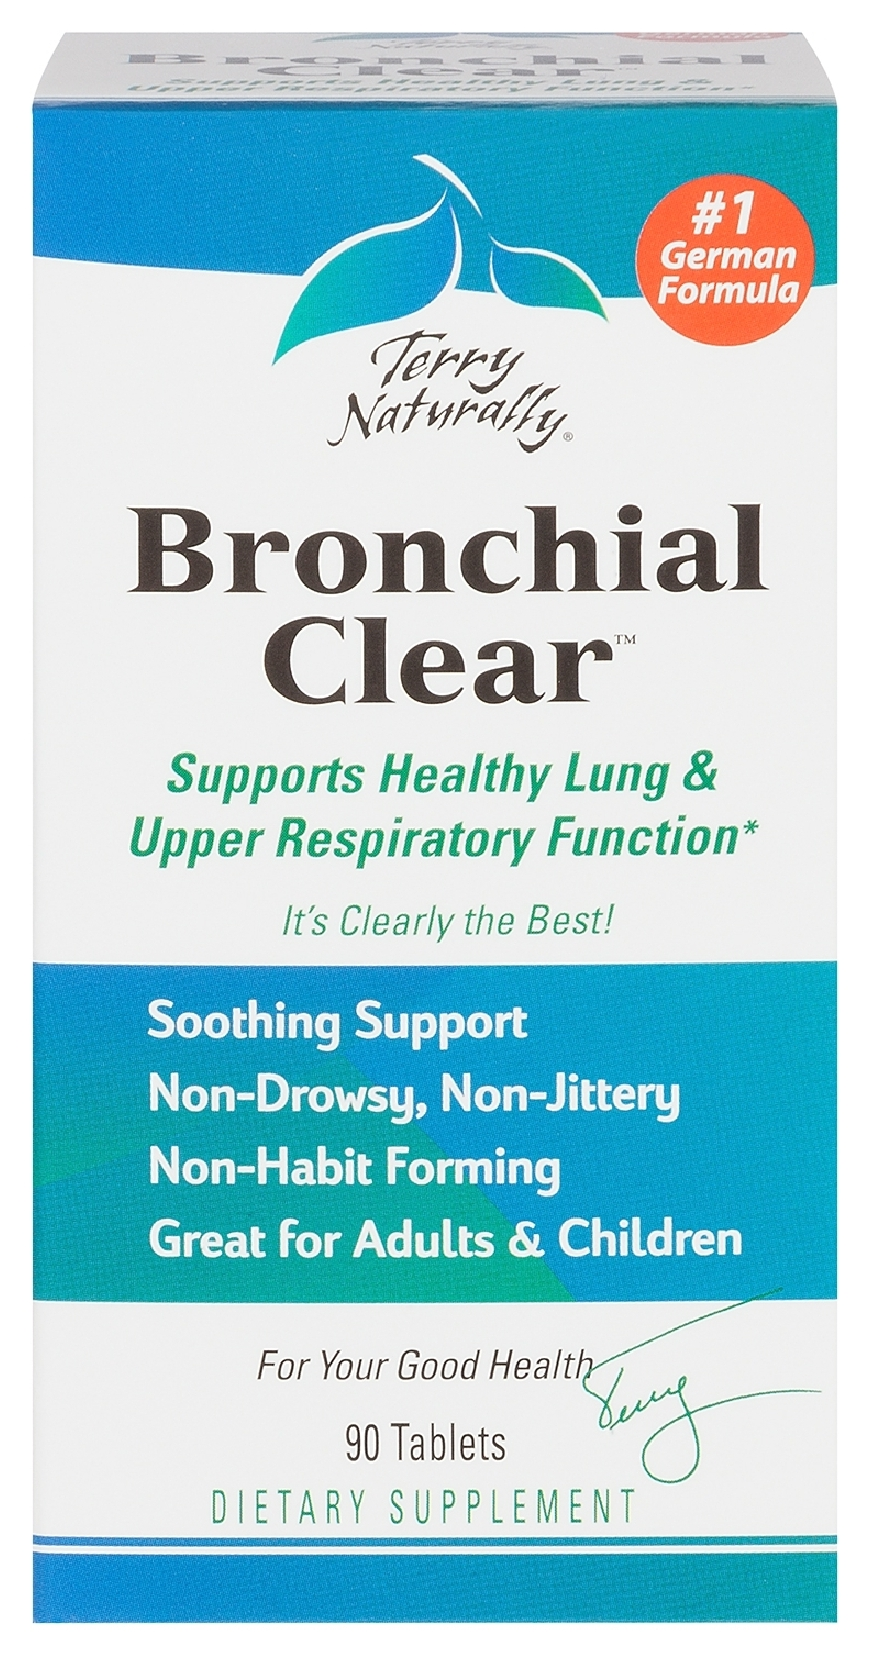 Terry Naturally Bronchial Clear 90 tabs by EuroPharma